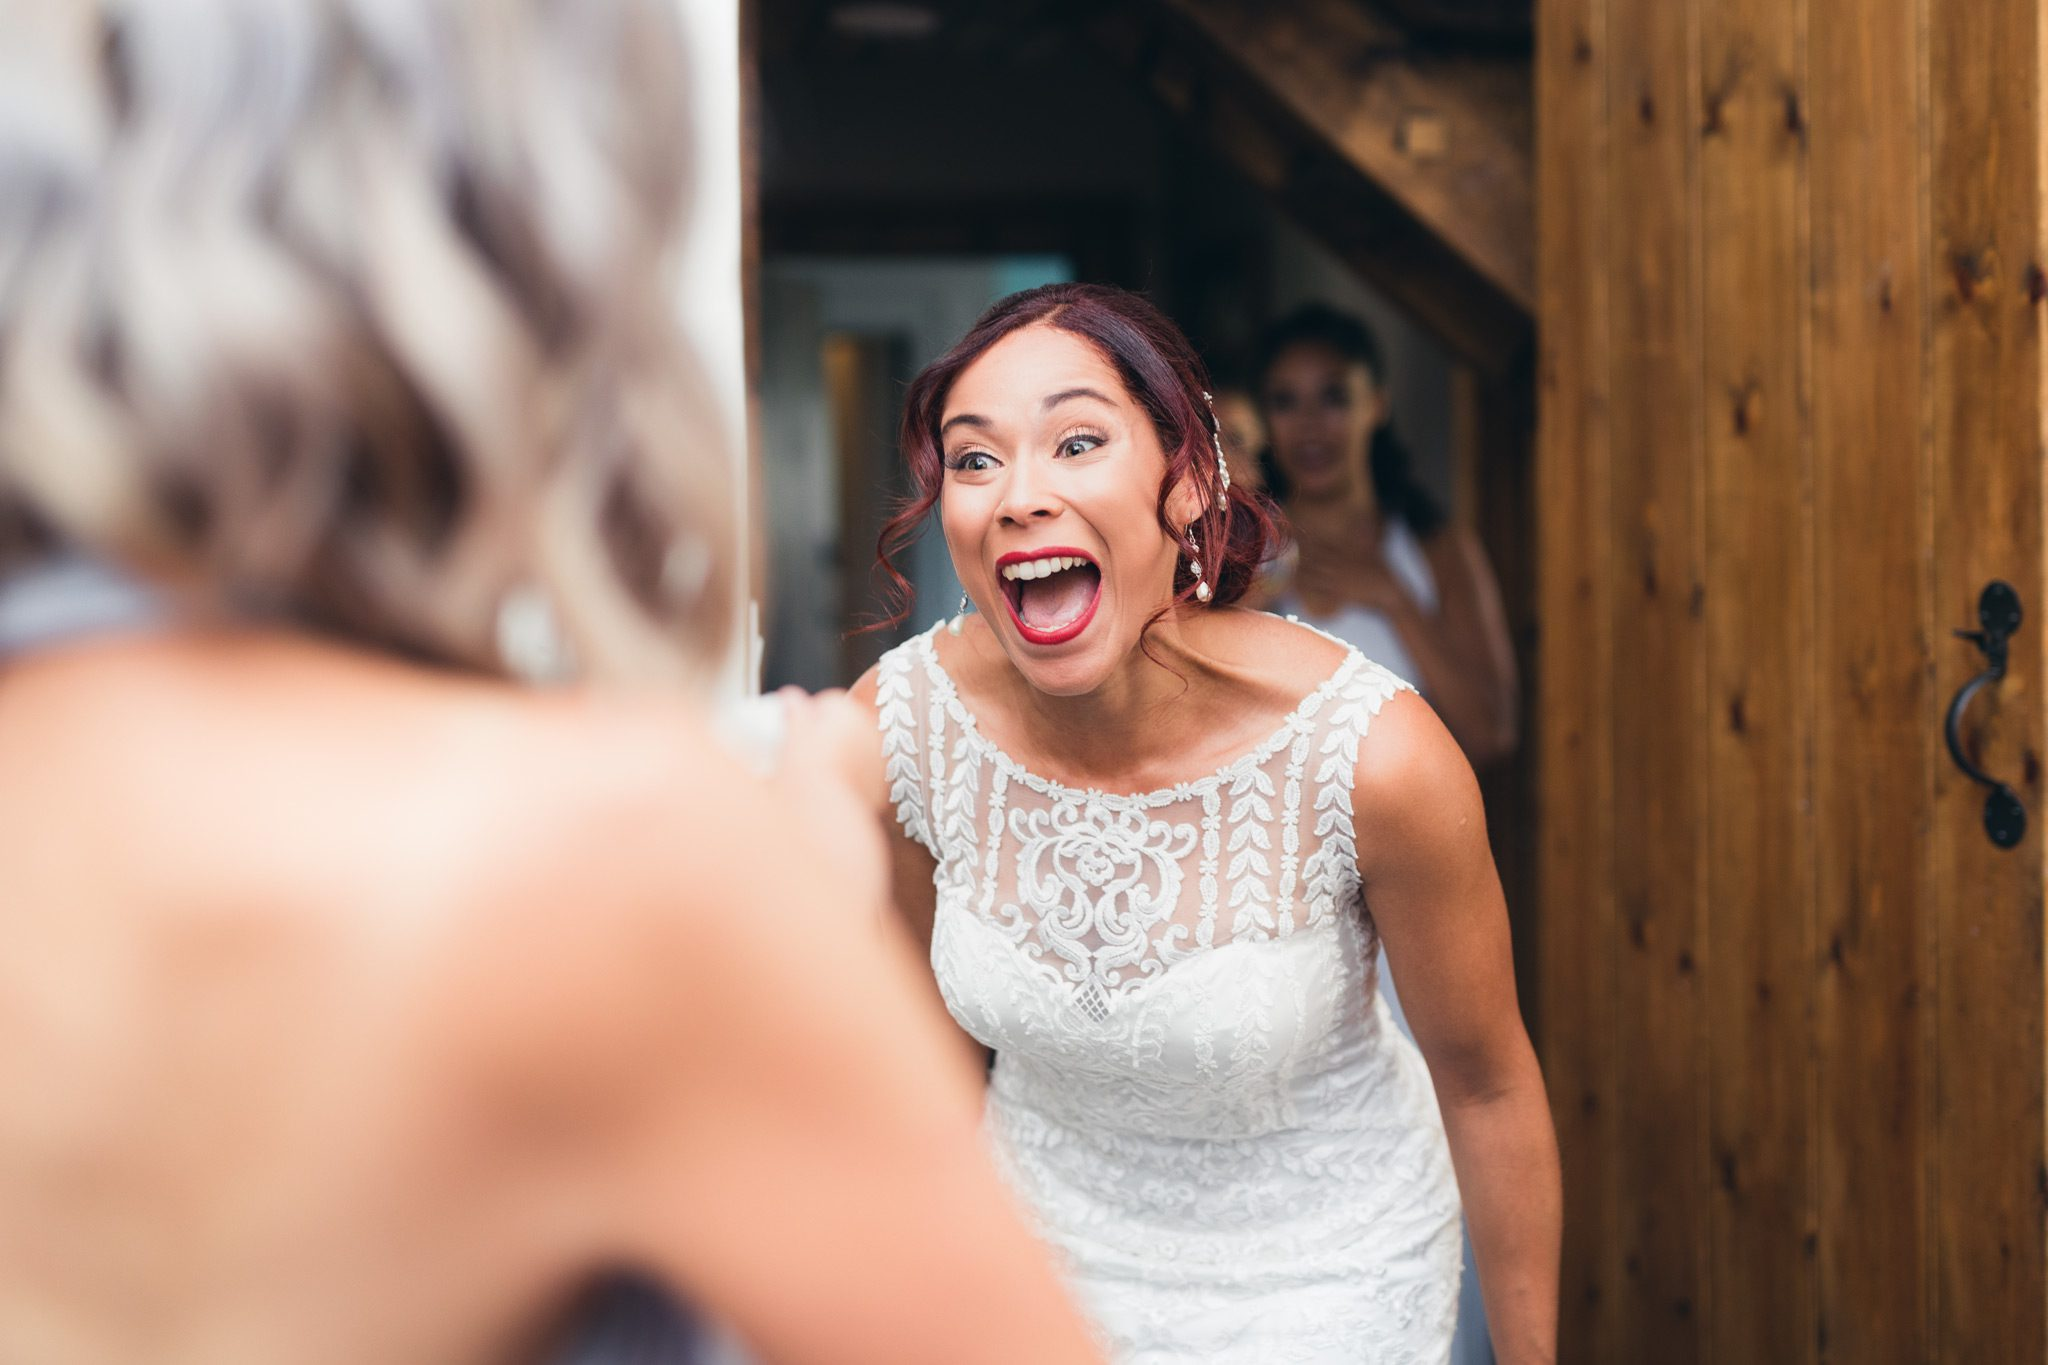 the bride getting excited with her guests as they see her for the first time